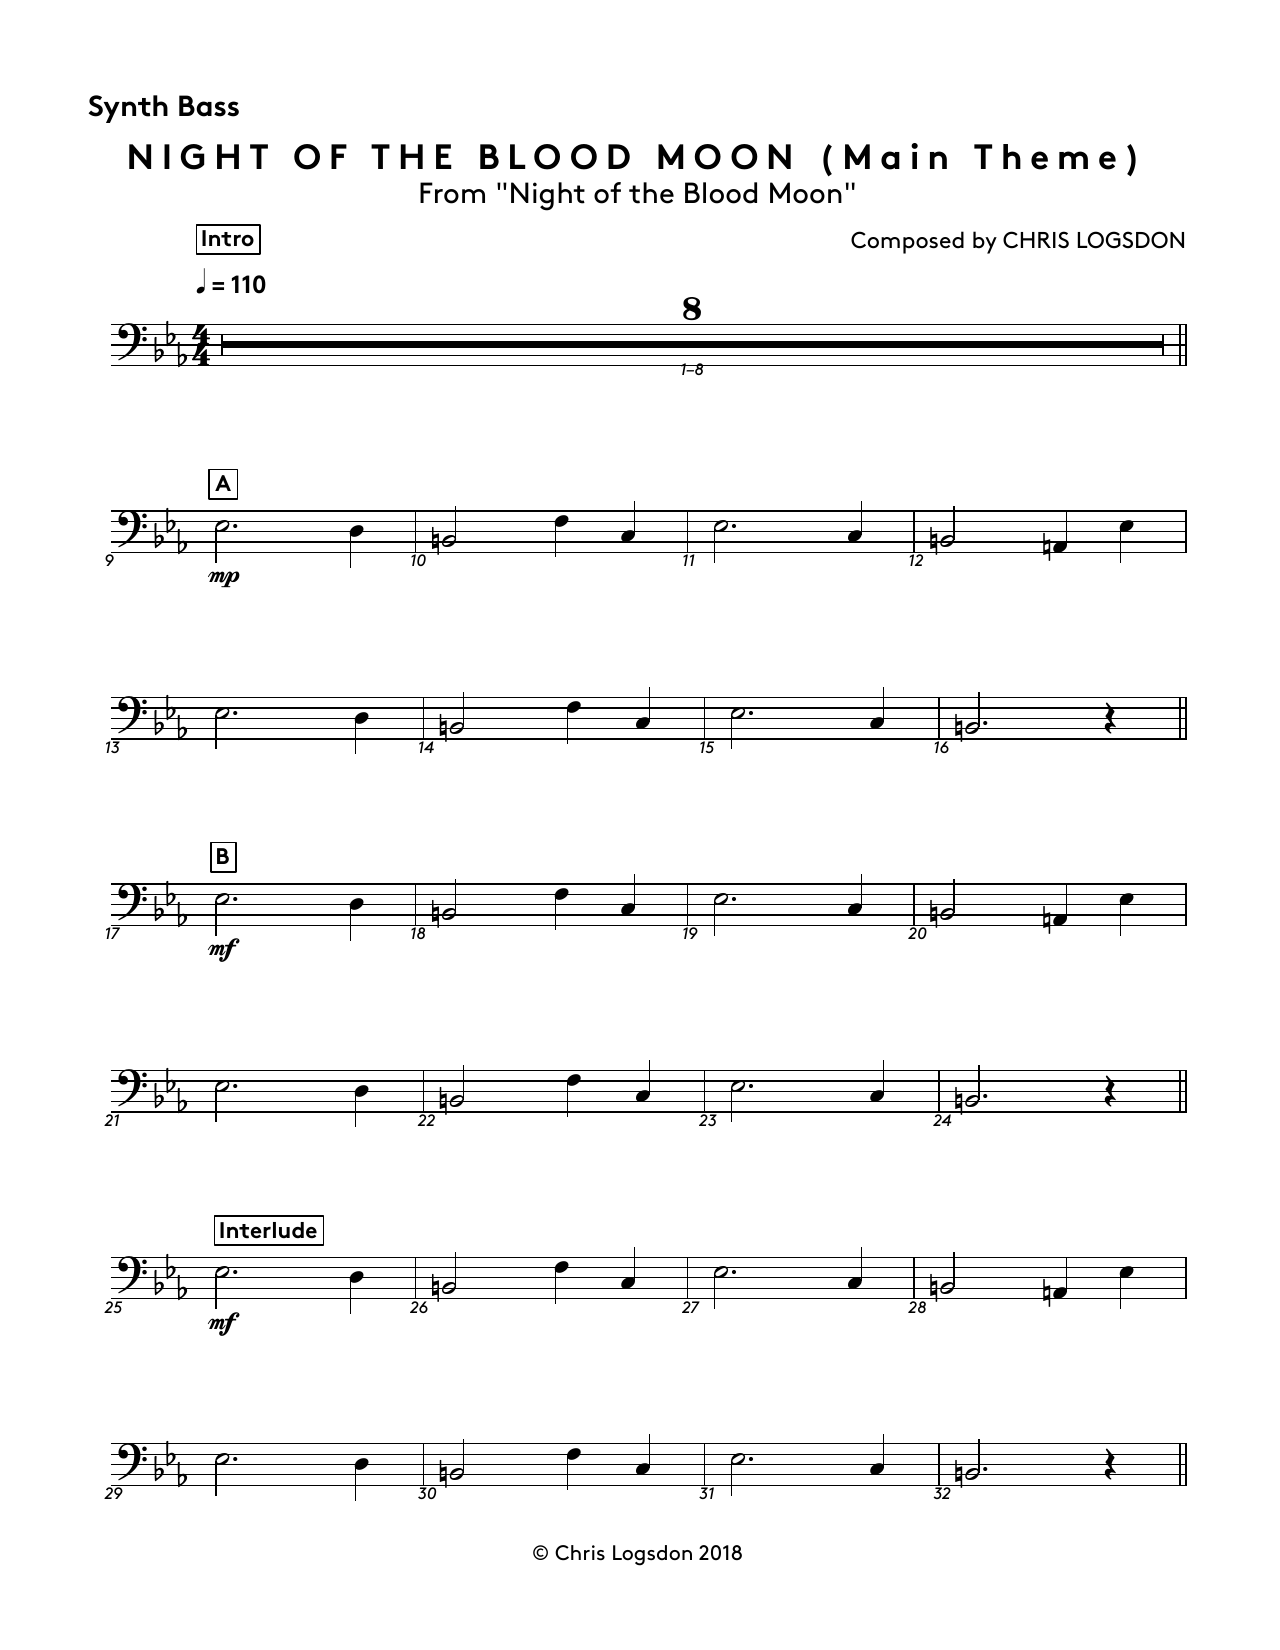 Night of the Blood Moon (Main Theme) (from Night of the Blood Moon) - Synth. Bass Sheet Music